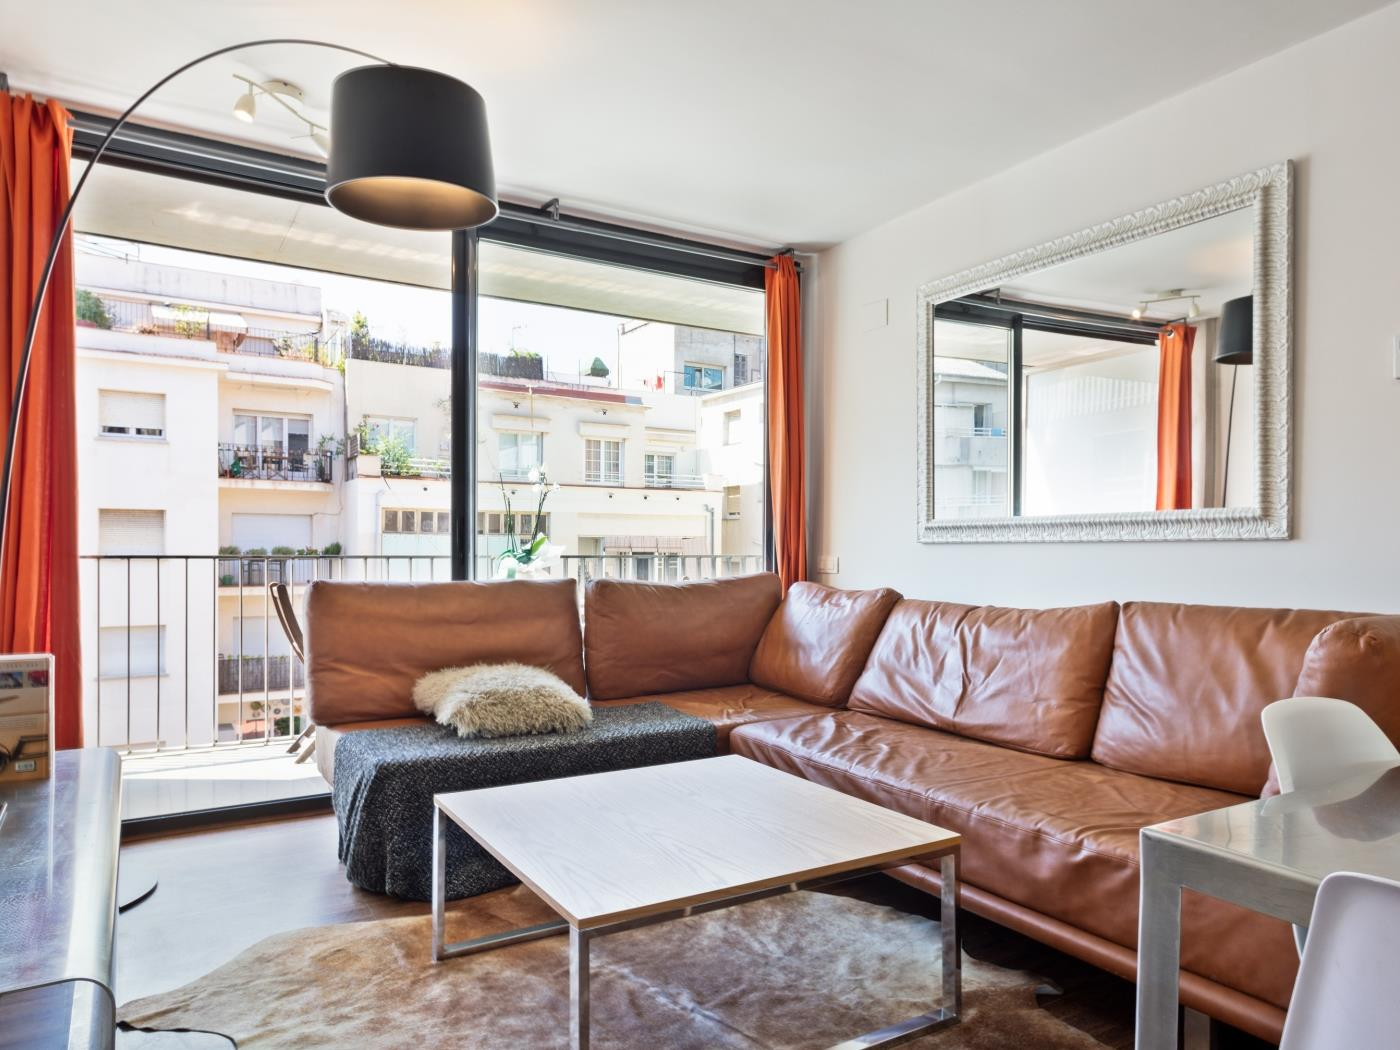 Executive Wohnung met privé terras in Sarrià- Sant Gervasi - My Space Barcelona Appartementen